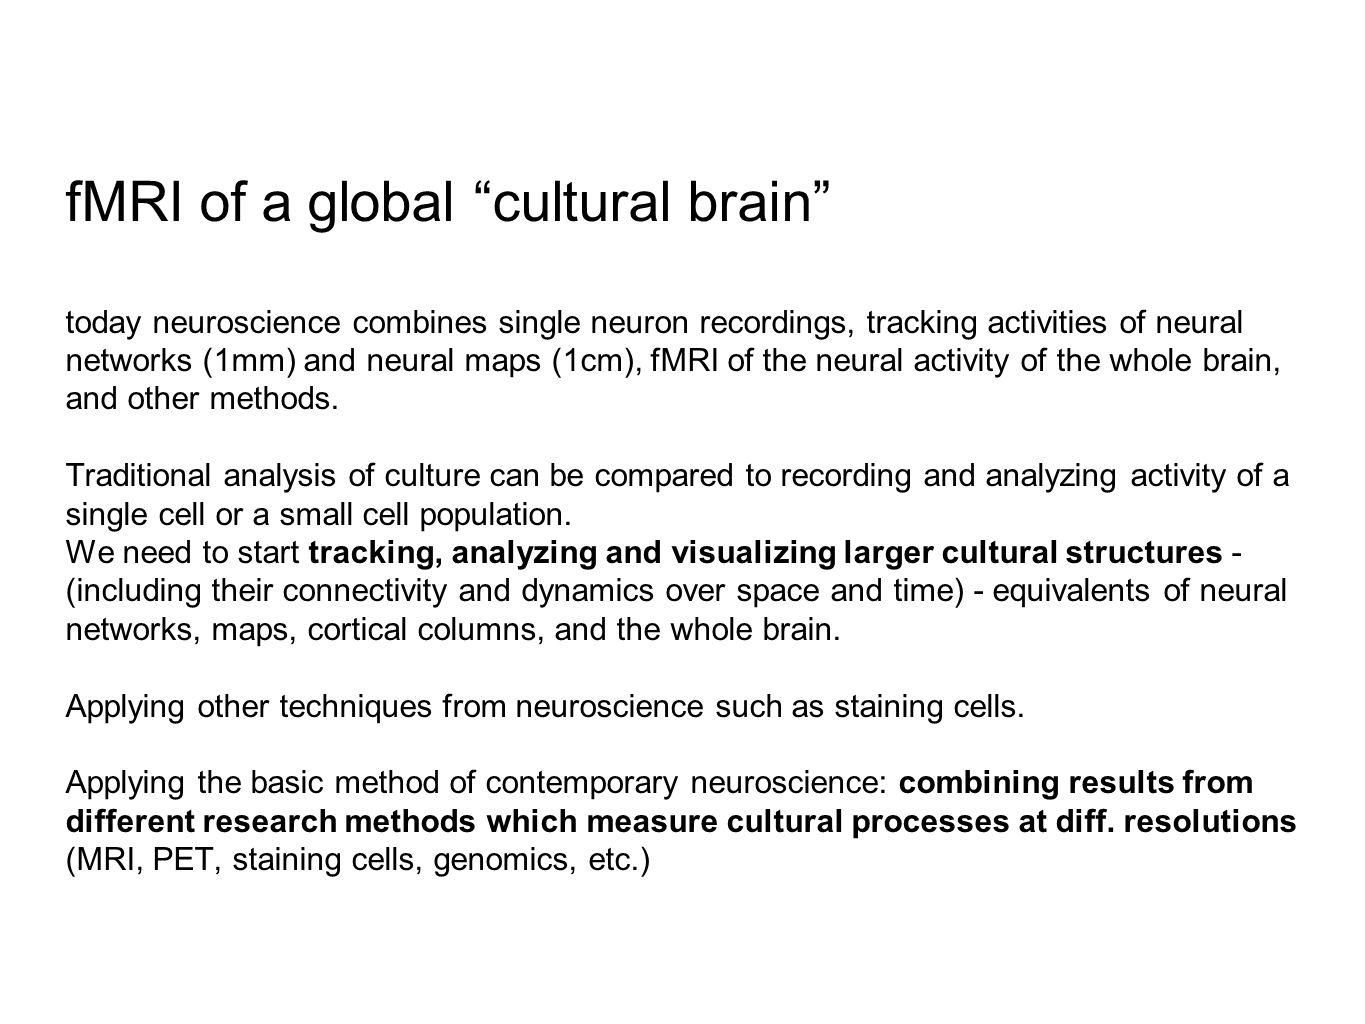 fMRI of a global cultural brain today neuroscience combines single neuron recordings, tracking activities of neural networks (1mm) and neural maps (1cm), fMRI of the neural activity of the whole brain, and other methods.